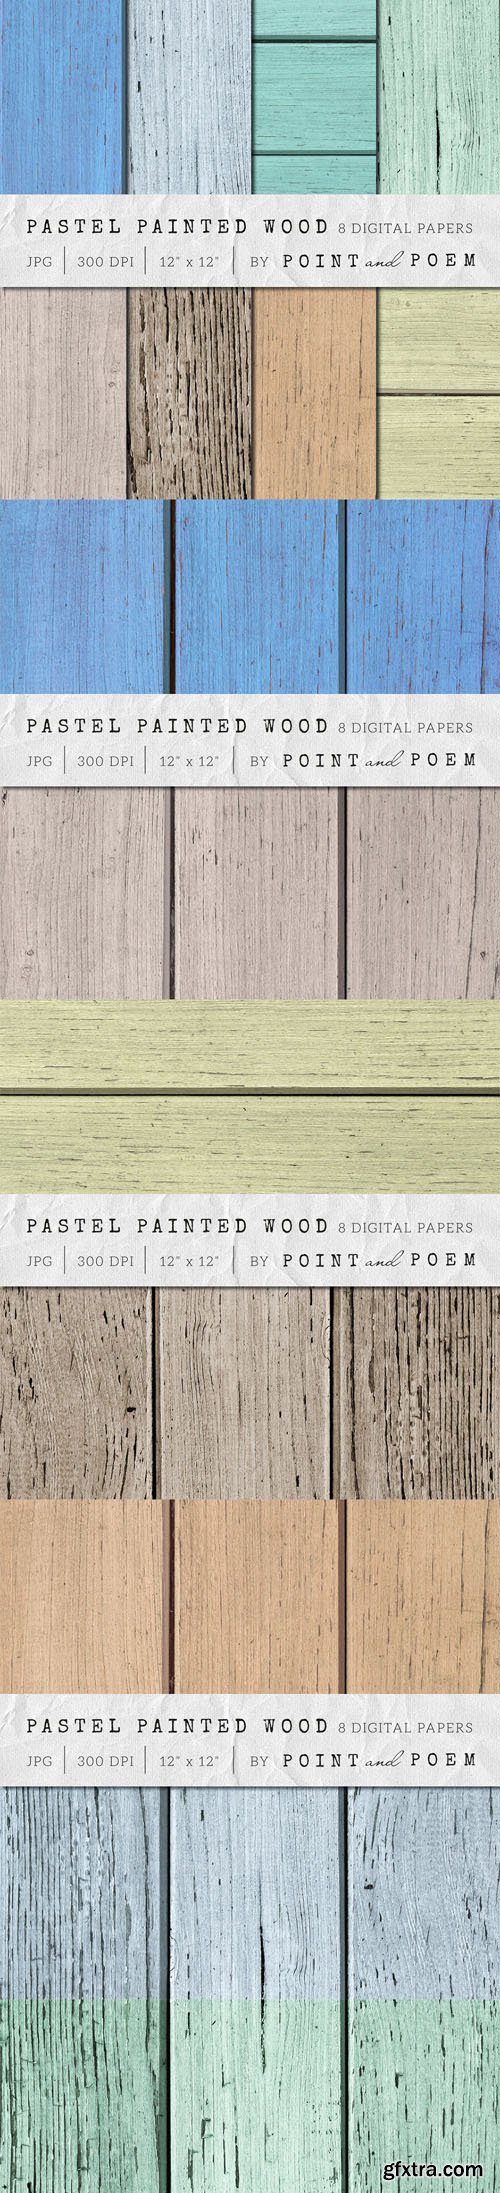 Wood Texture - Painted Pastel Wood - CM 107708